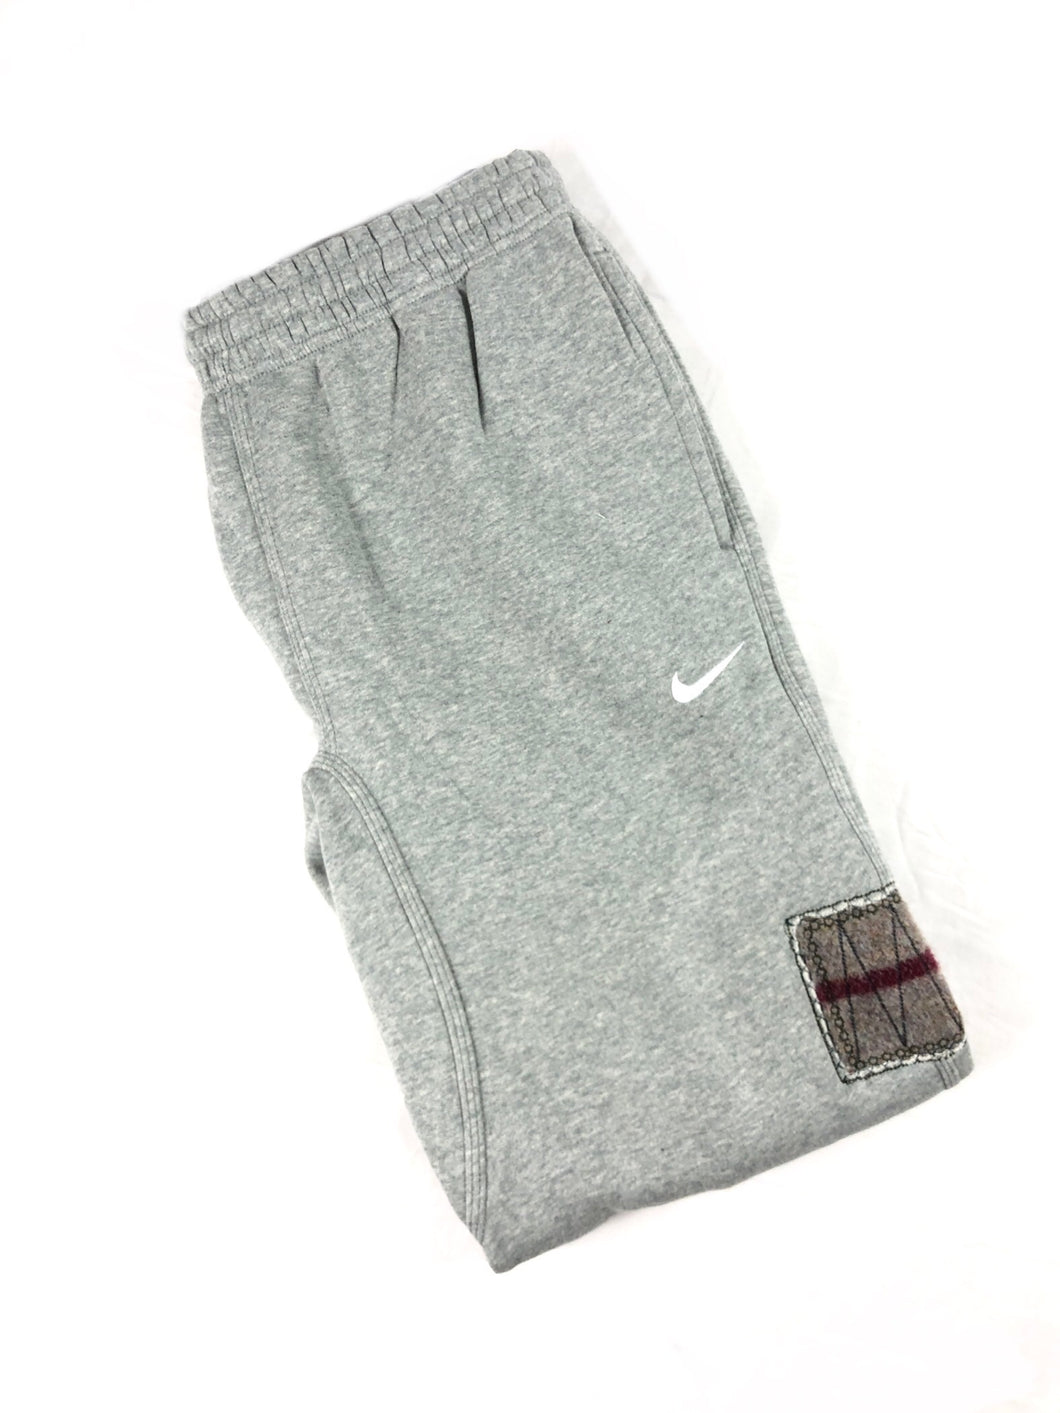 Nike Blanket Patchwork Pants